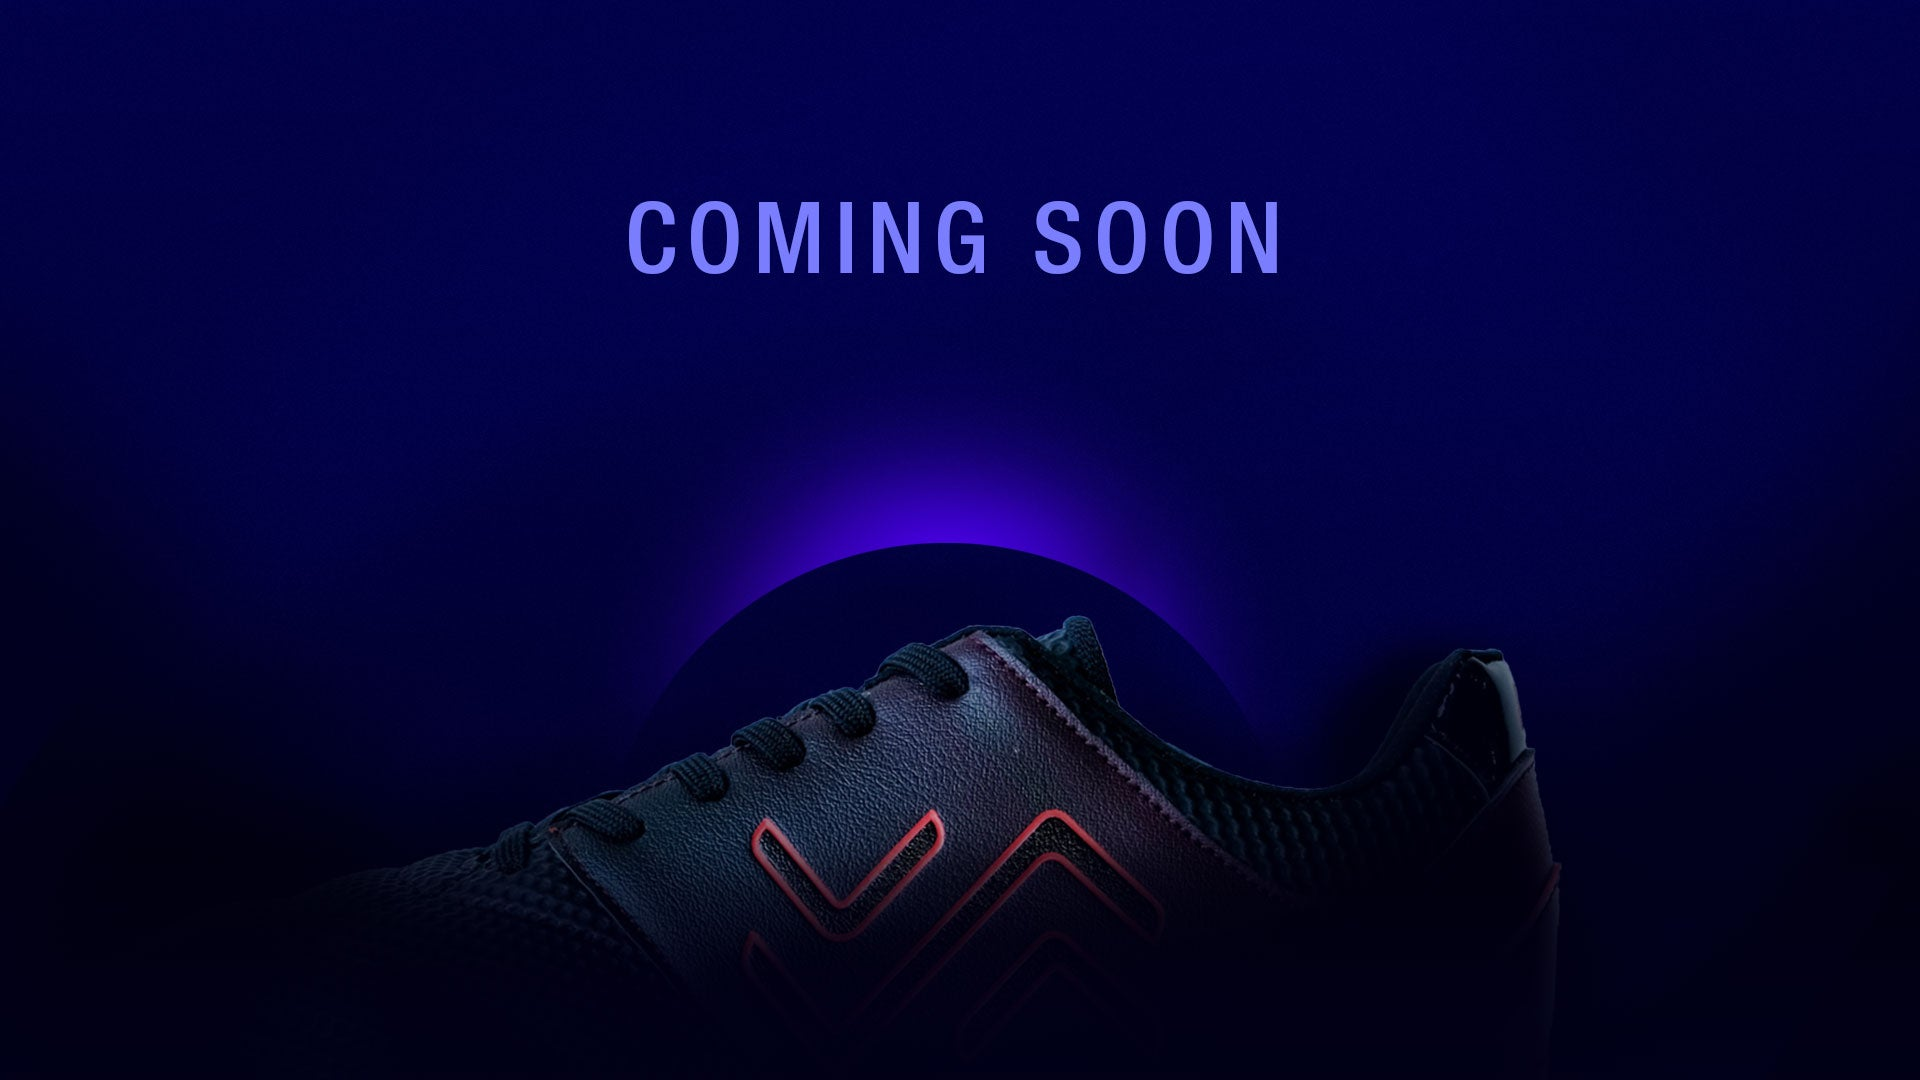 women's soccer cleat new release coming soon